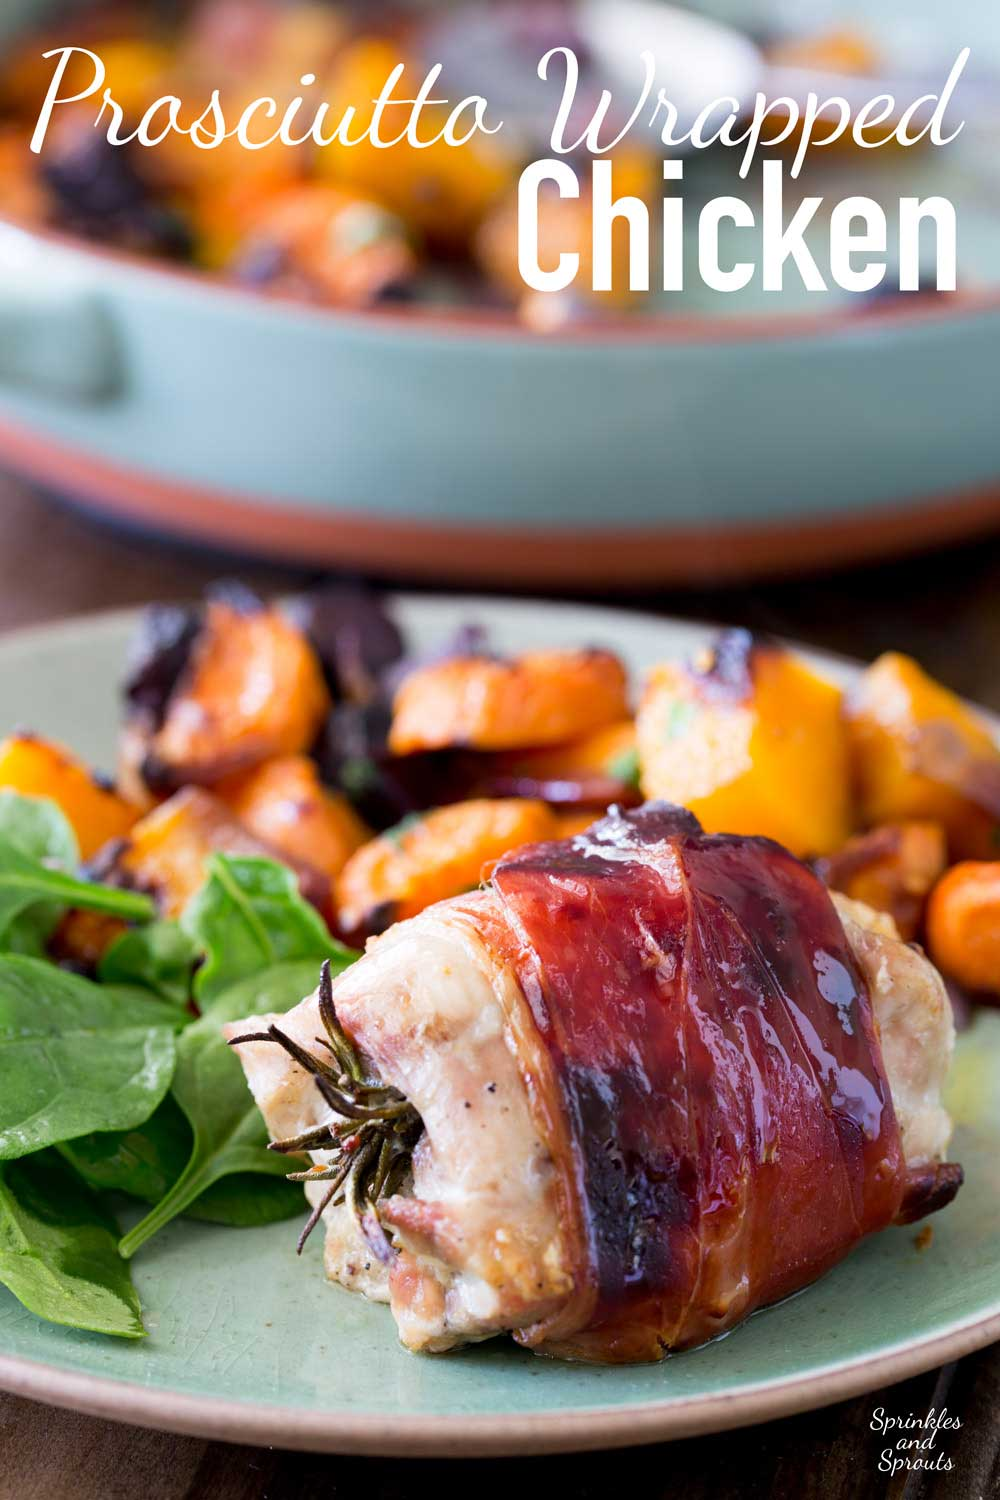 Juicy chicken infused with pepper and rosemary, wrapped in salty prosciutto and glazed with maple syrup. This is packed with flavour and so simple to make. Serve it with my roasted root veg and you have a healthy and achievable mid-week roast.